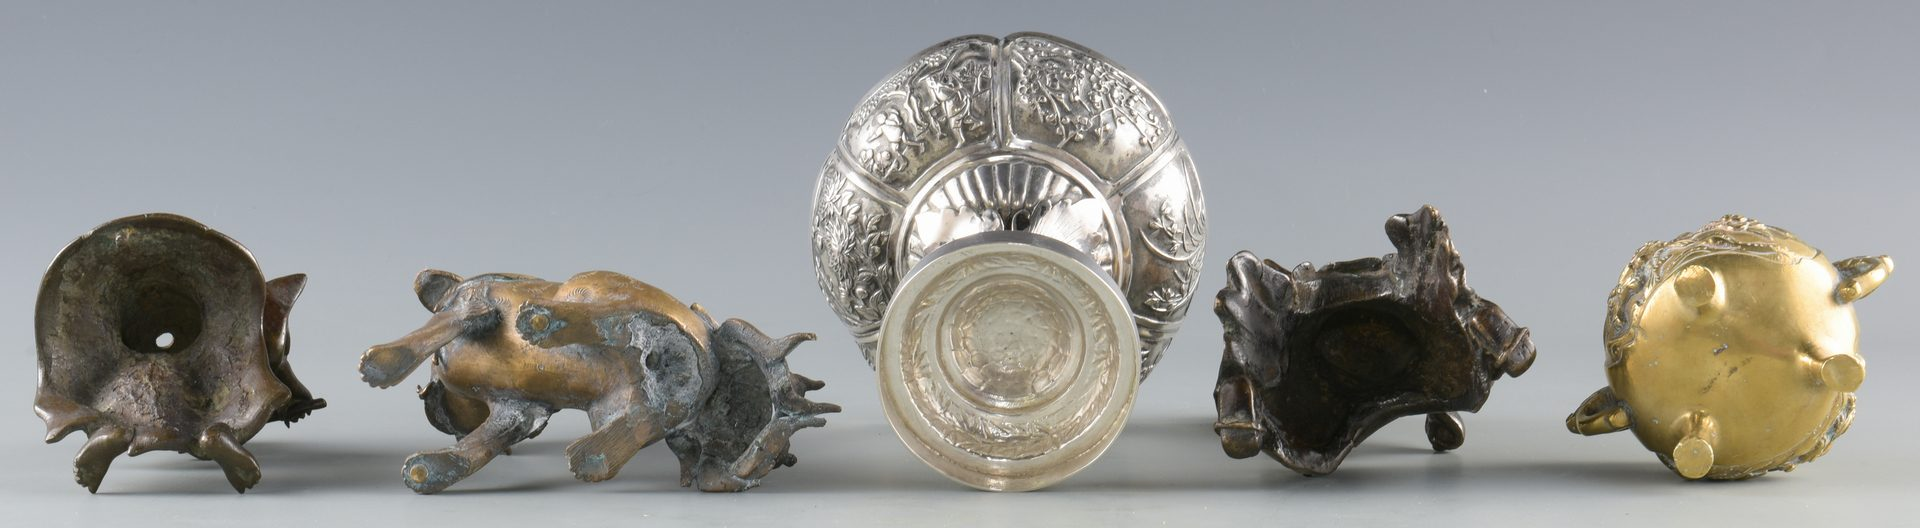 Lot 13: 5 Chinese Silver & Bronze items